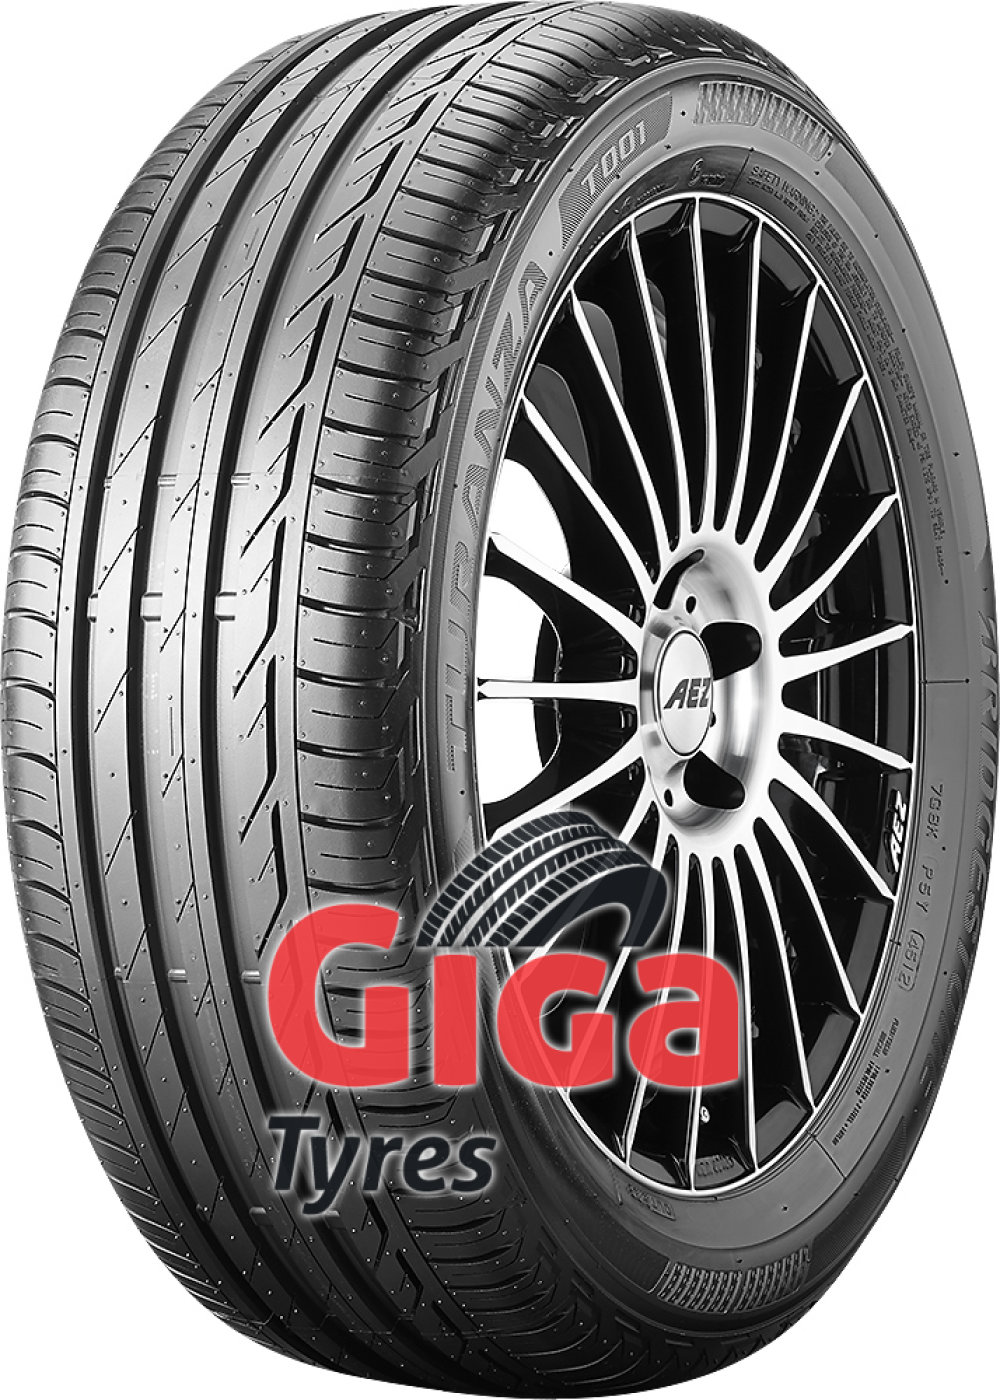 Bridgestone Turanza T001 ( 225/45 R18 91V with rim protection (MFS) )